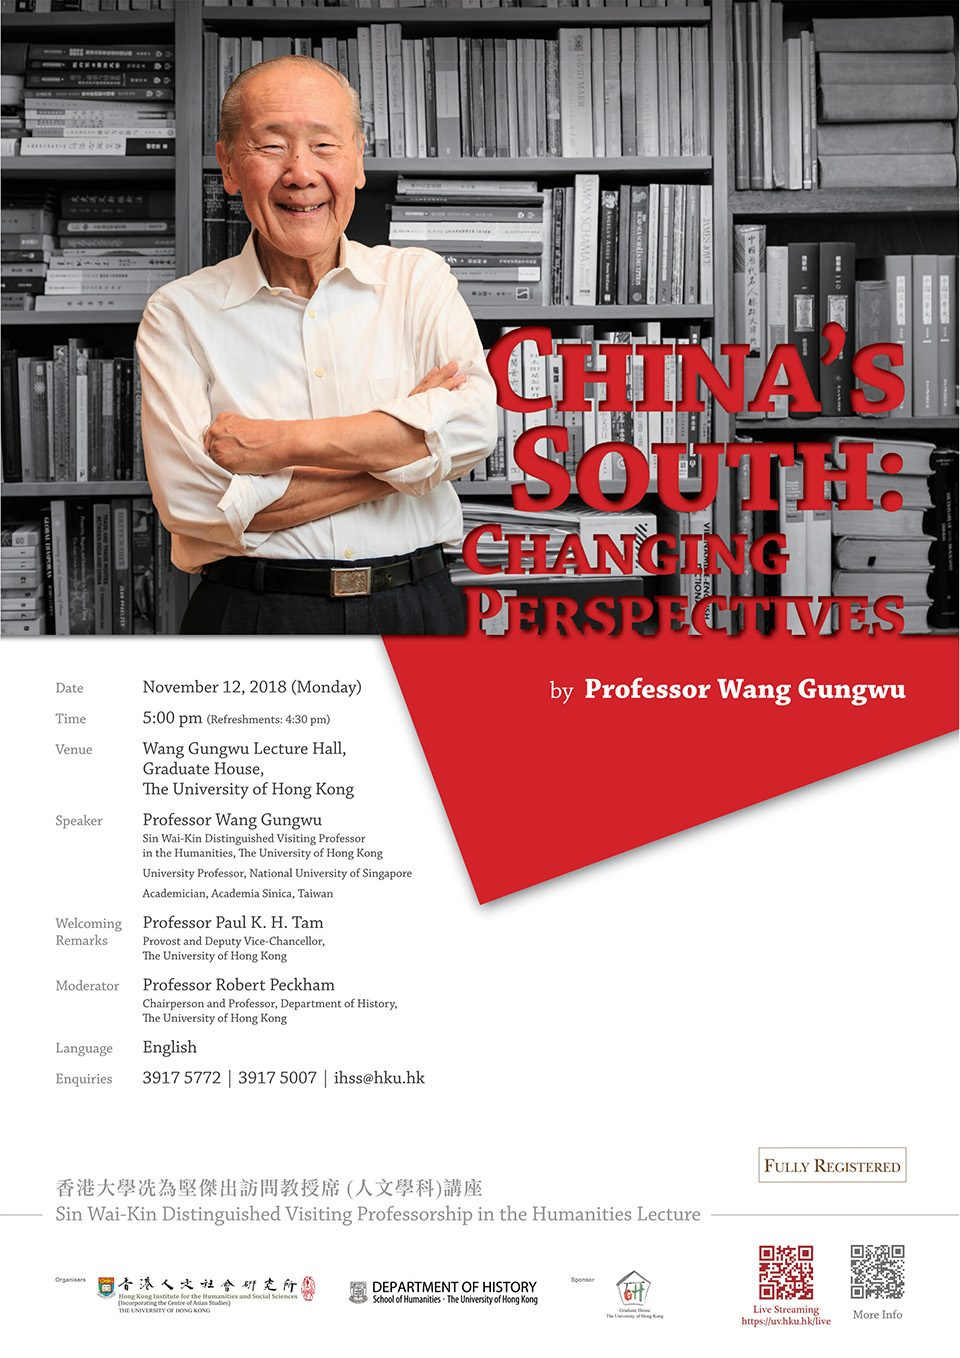 "Sin Wai-Kin Distinguished Visiting Professorship in the Humanities Lecture on ""China's South: Changing Perspectives"" by Professor Wang Gungwu (November 12, 2018)"